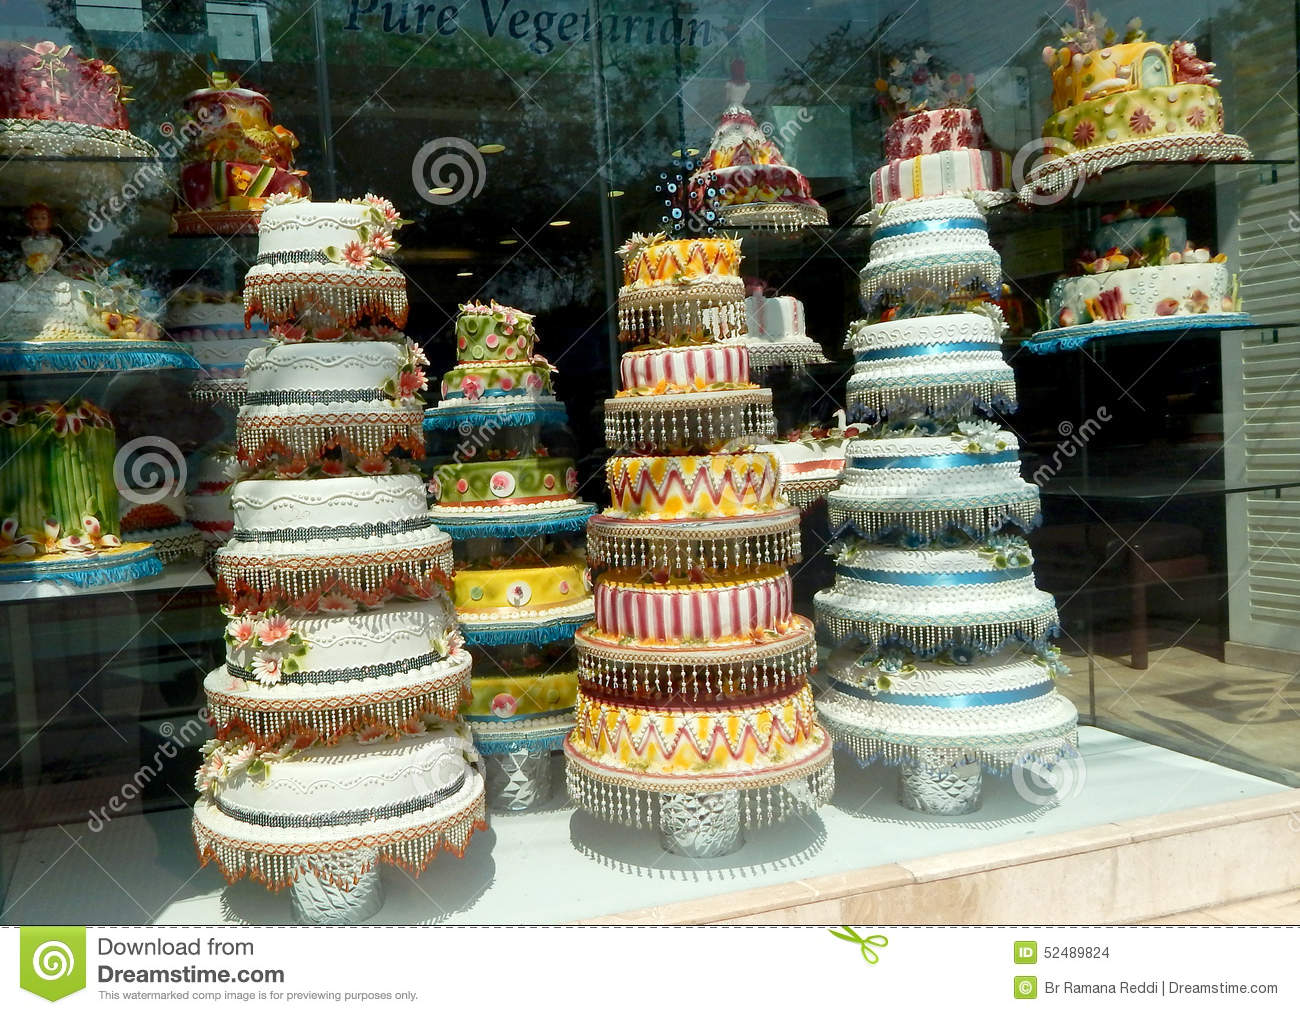 Send Cakes To Hyderabad Country Oven makes it easier to share fresh delicious bliss with all the important people in your life, without breaking your bank or spending a lot of time in the kitchen. Birthday Cakes, Designer Cakes, Fancy Cakes, Kids Cakes, Theme Cakes, Photo Cakes, Barbie Cakes are some of our unique offerings/5().